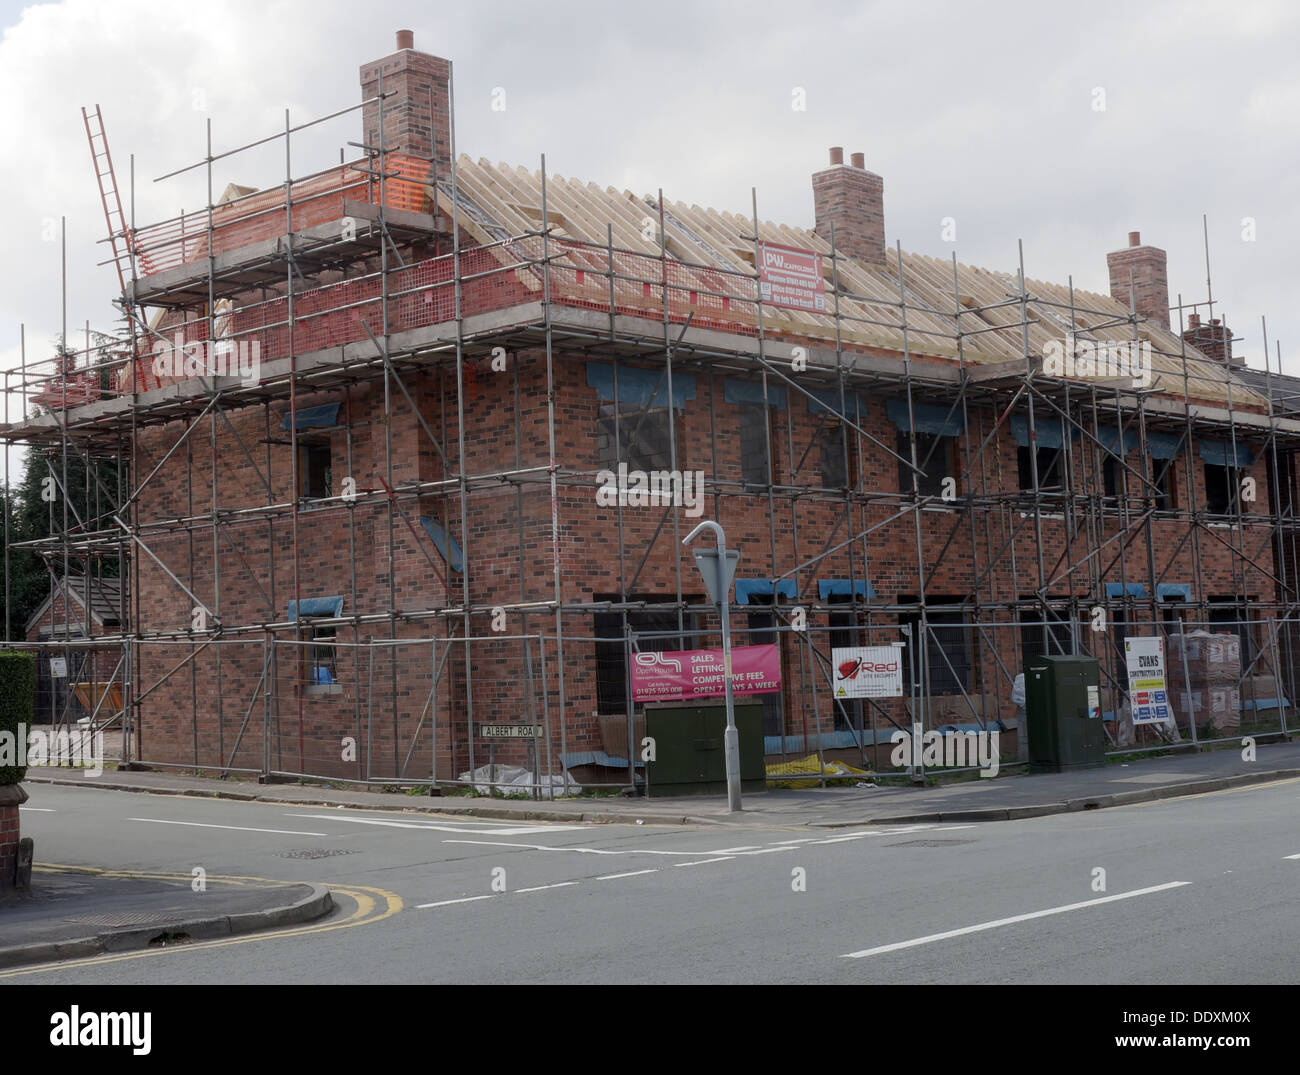 affordable,housing,ukhousing,scaffolding,brick,bricks,construction,roof,roofing,refurb,refurbishment,development,dev,building,new,build,capital,works,Affordable Housing,New Build,Capital works,GoTonySmith,@HotpixUK,Buy Pictures of,Buy Images Of,Images of,Stock Images